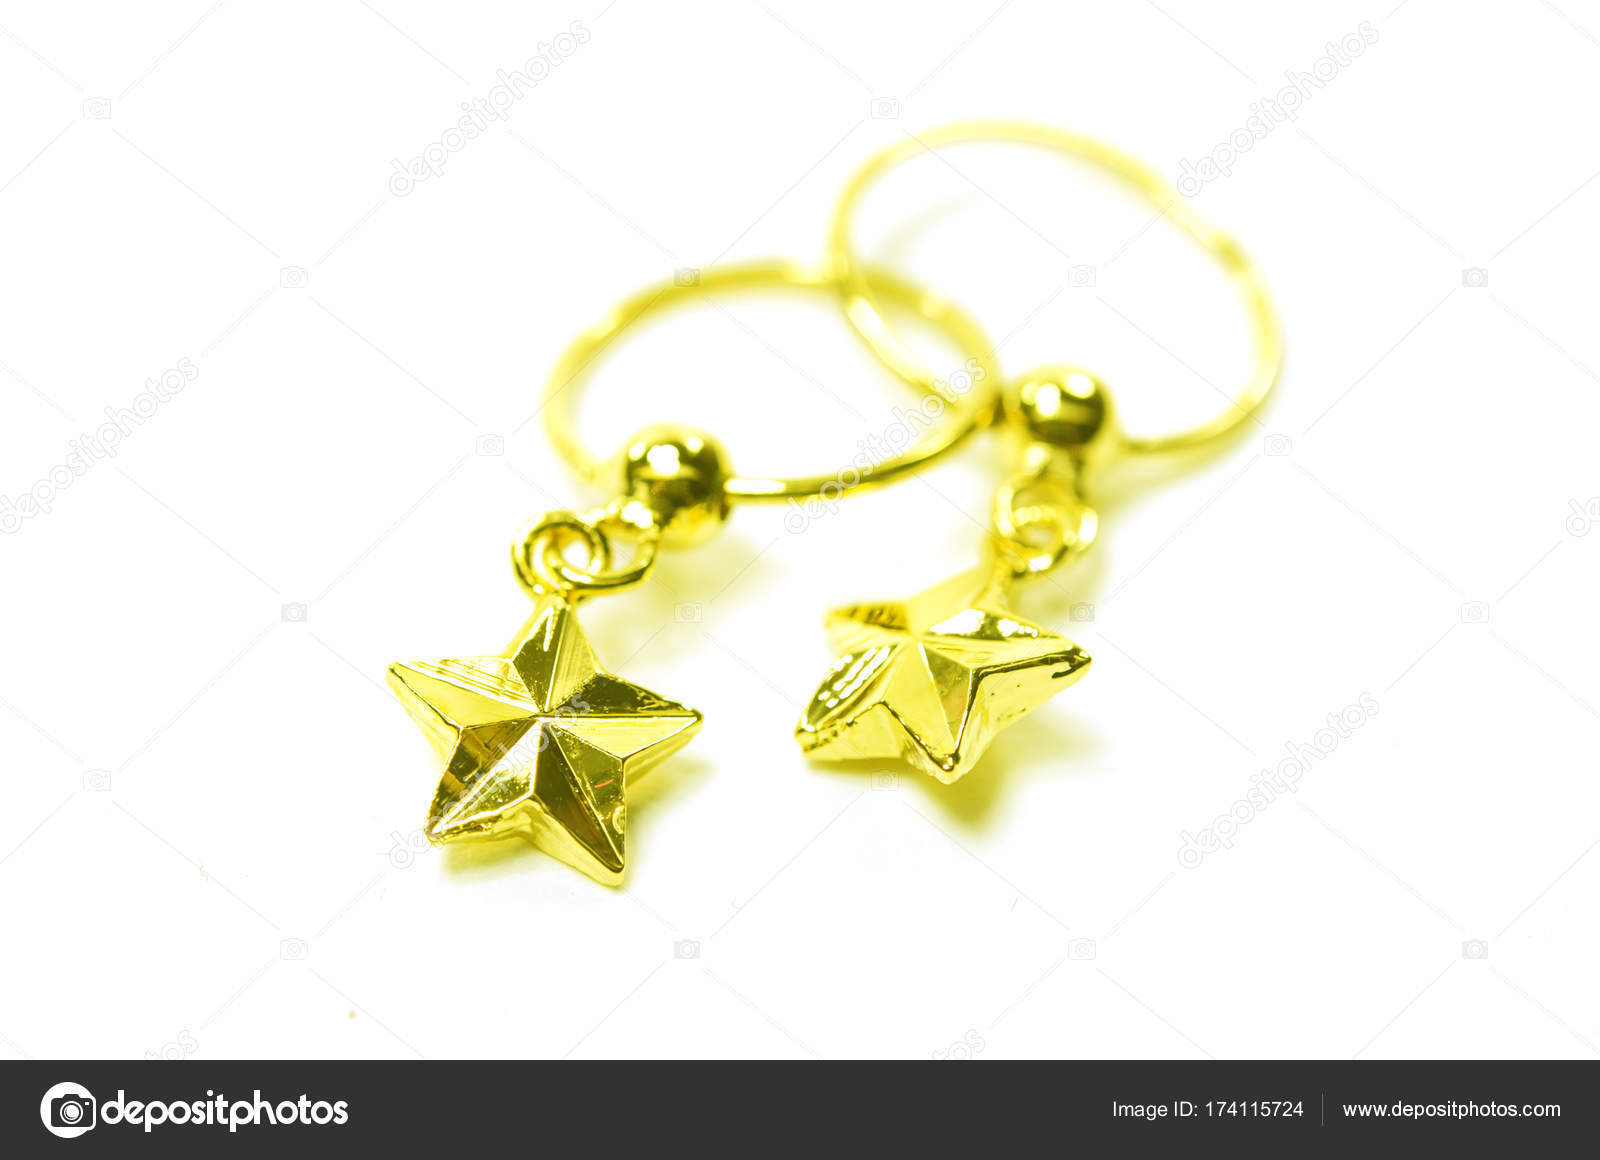 woman jewelry latest chain star gold moq design shape for pendant pin necklace